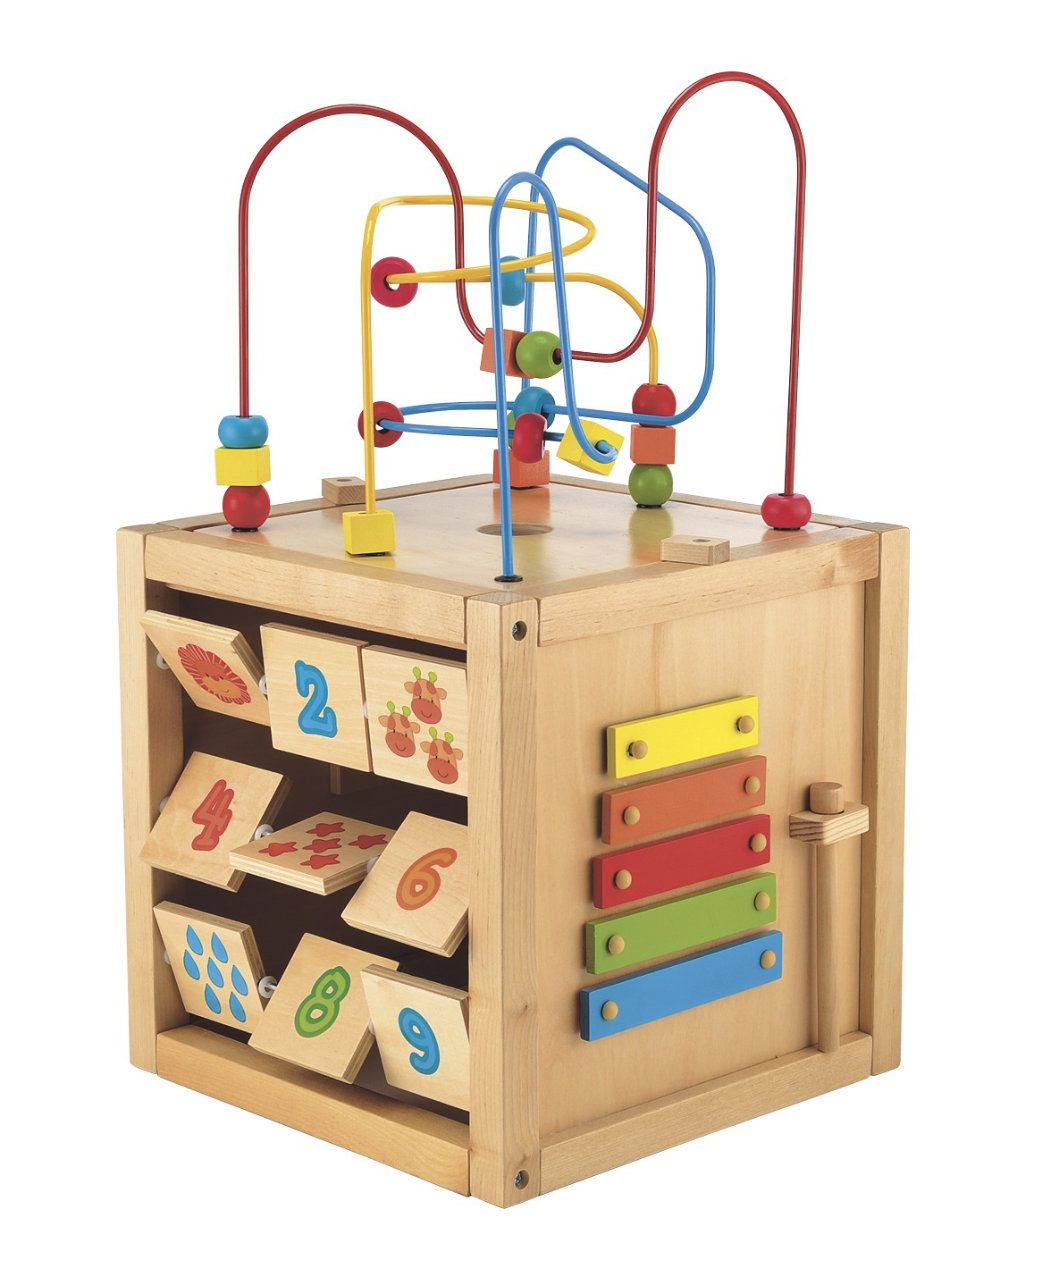 Mothercare Safari Wooden Activity Cube Wooden Toys Puzzles